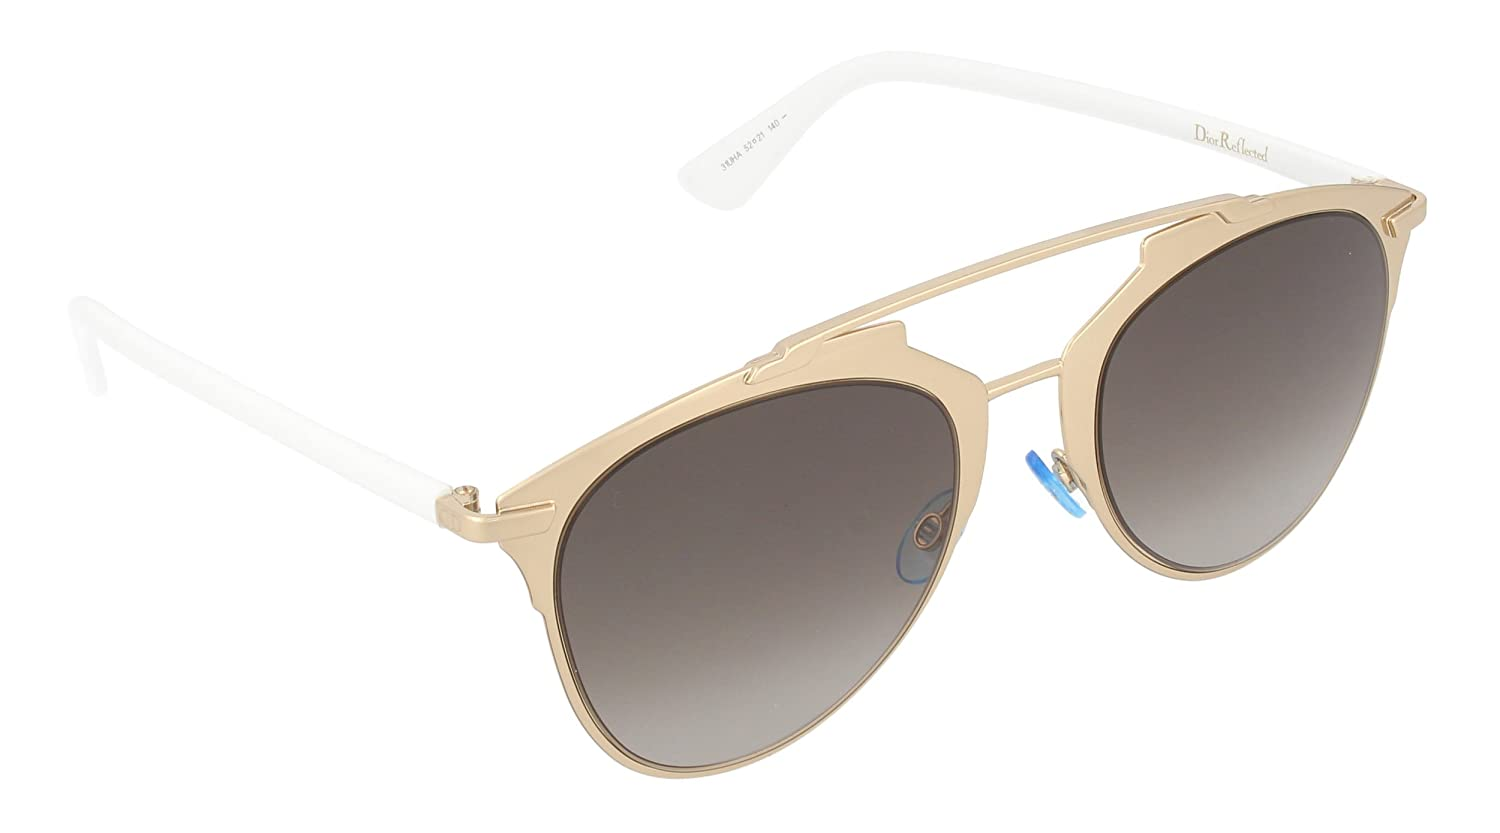 Dior DIORREFLECTED HA 31U Gafas de sol, Dorado (Rose Gold White/Brown Shaded), 52 para Mujer